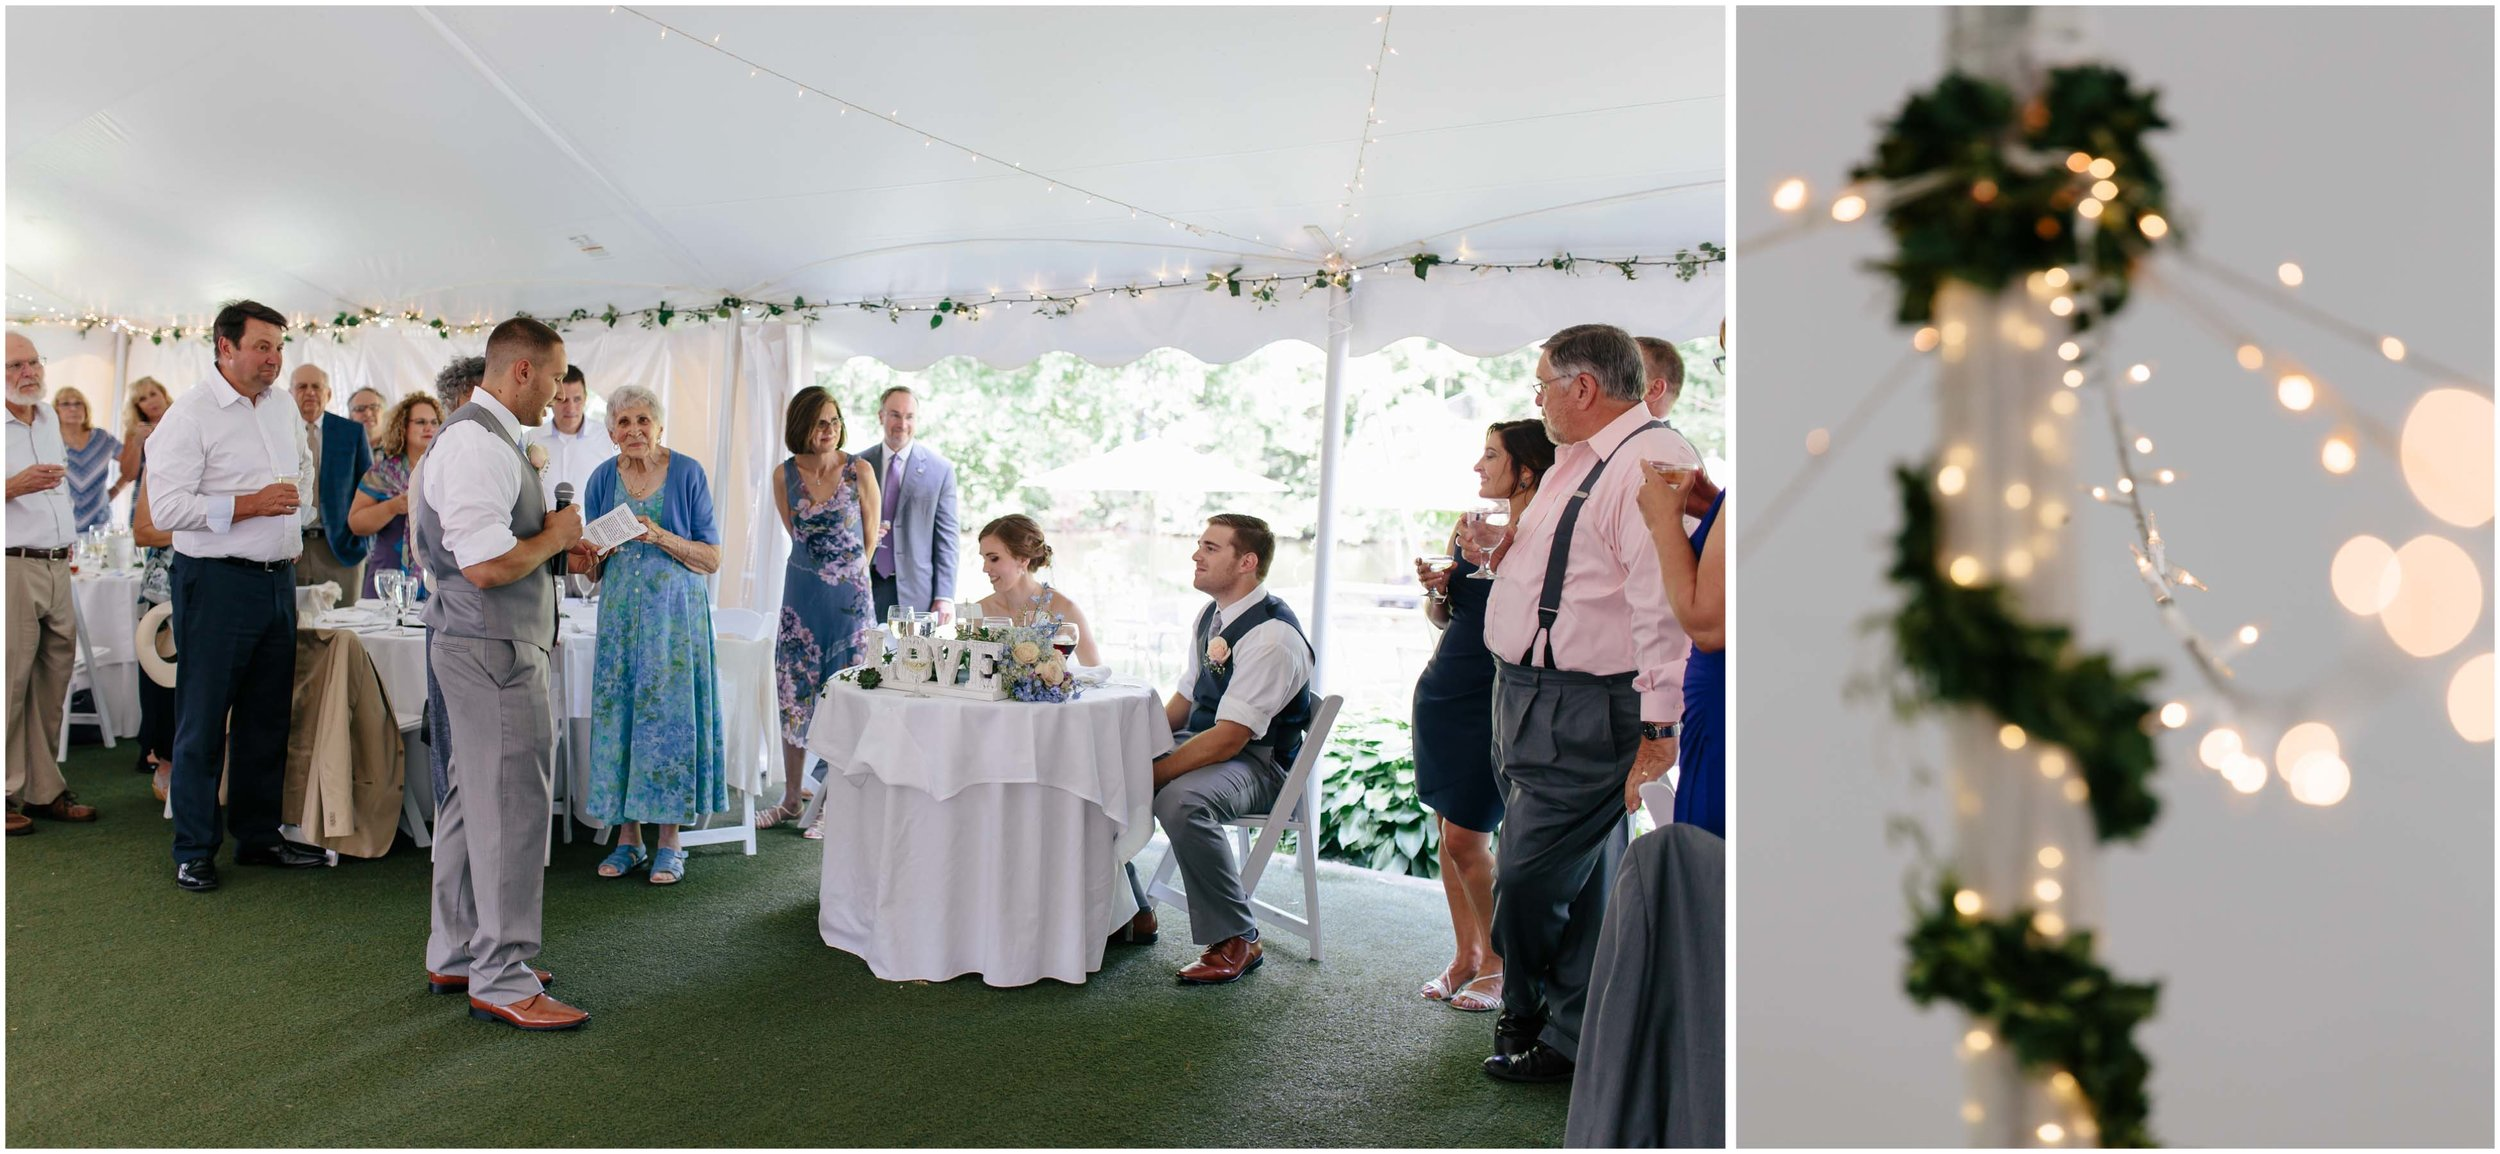 Sunny New Hampshire Summer Wedding at Mile Away Restaurant Milford